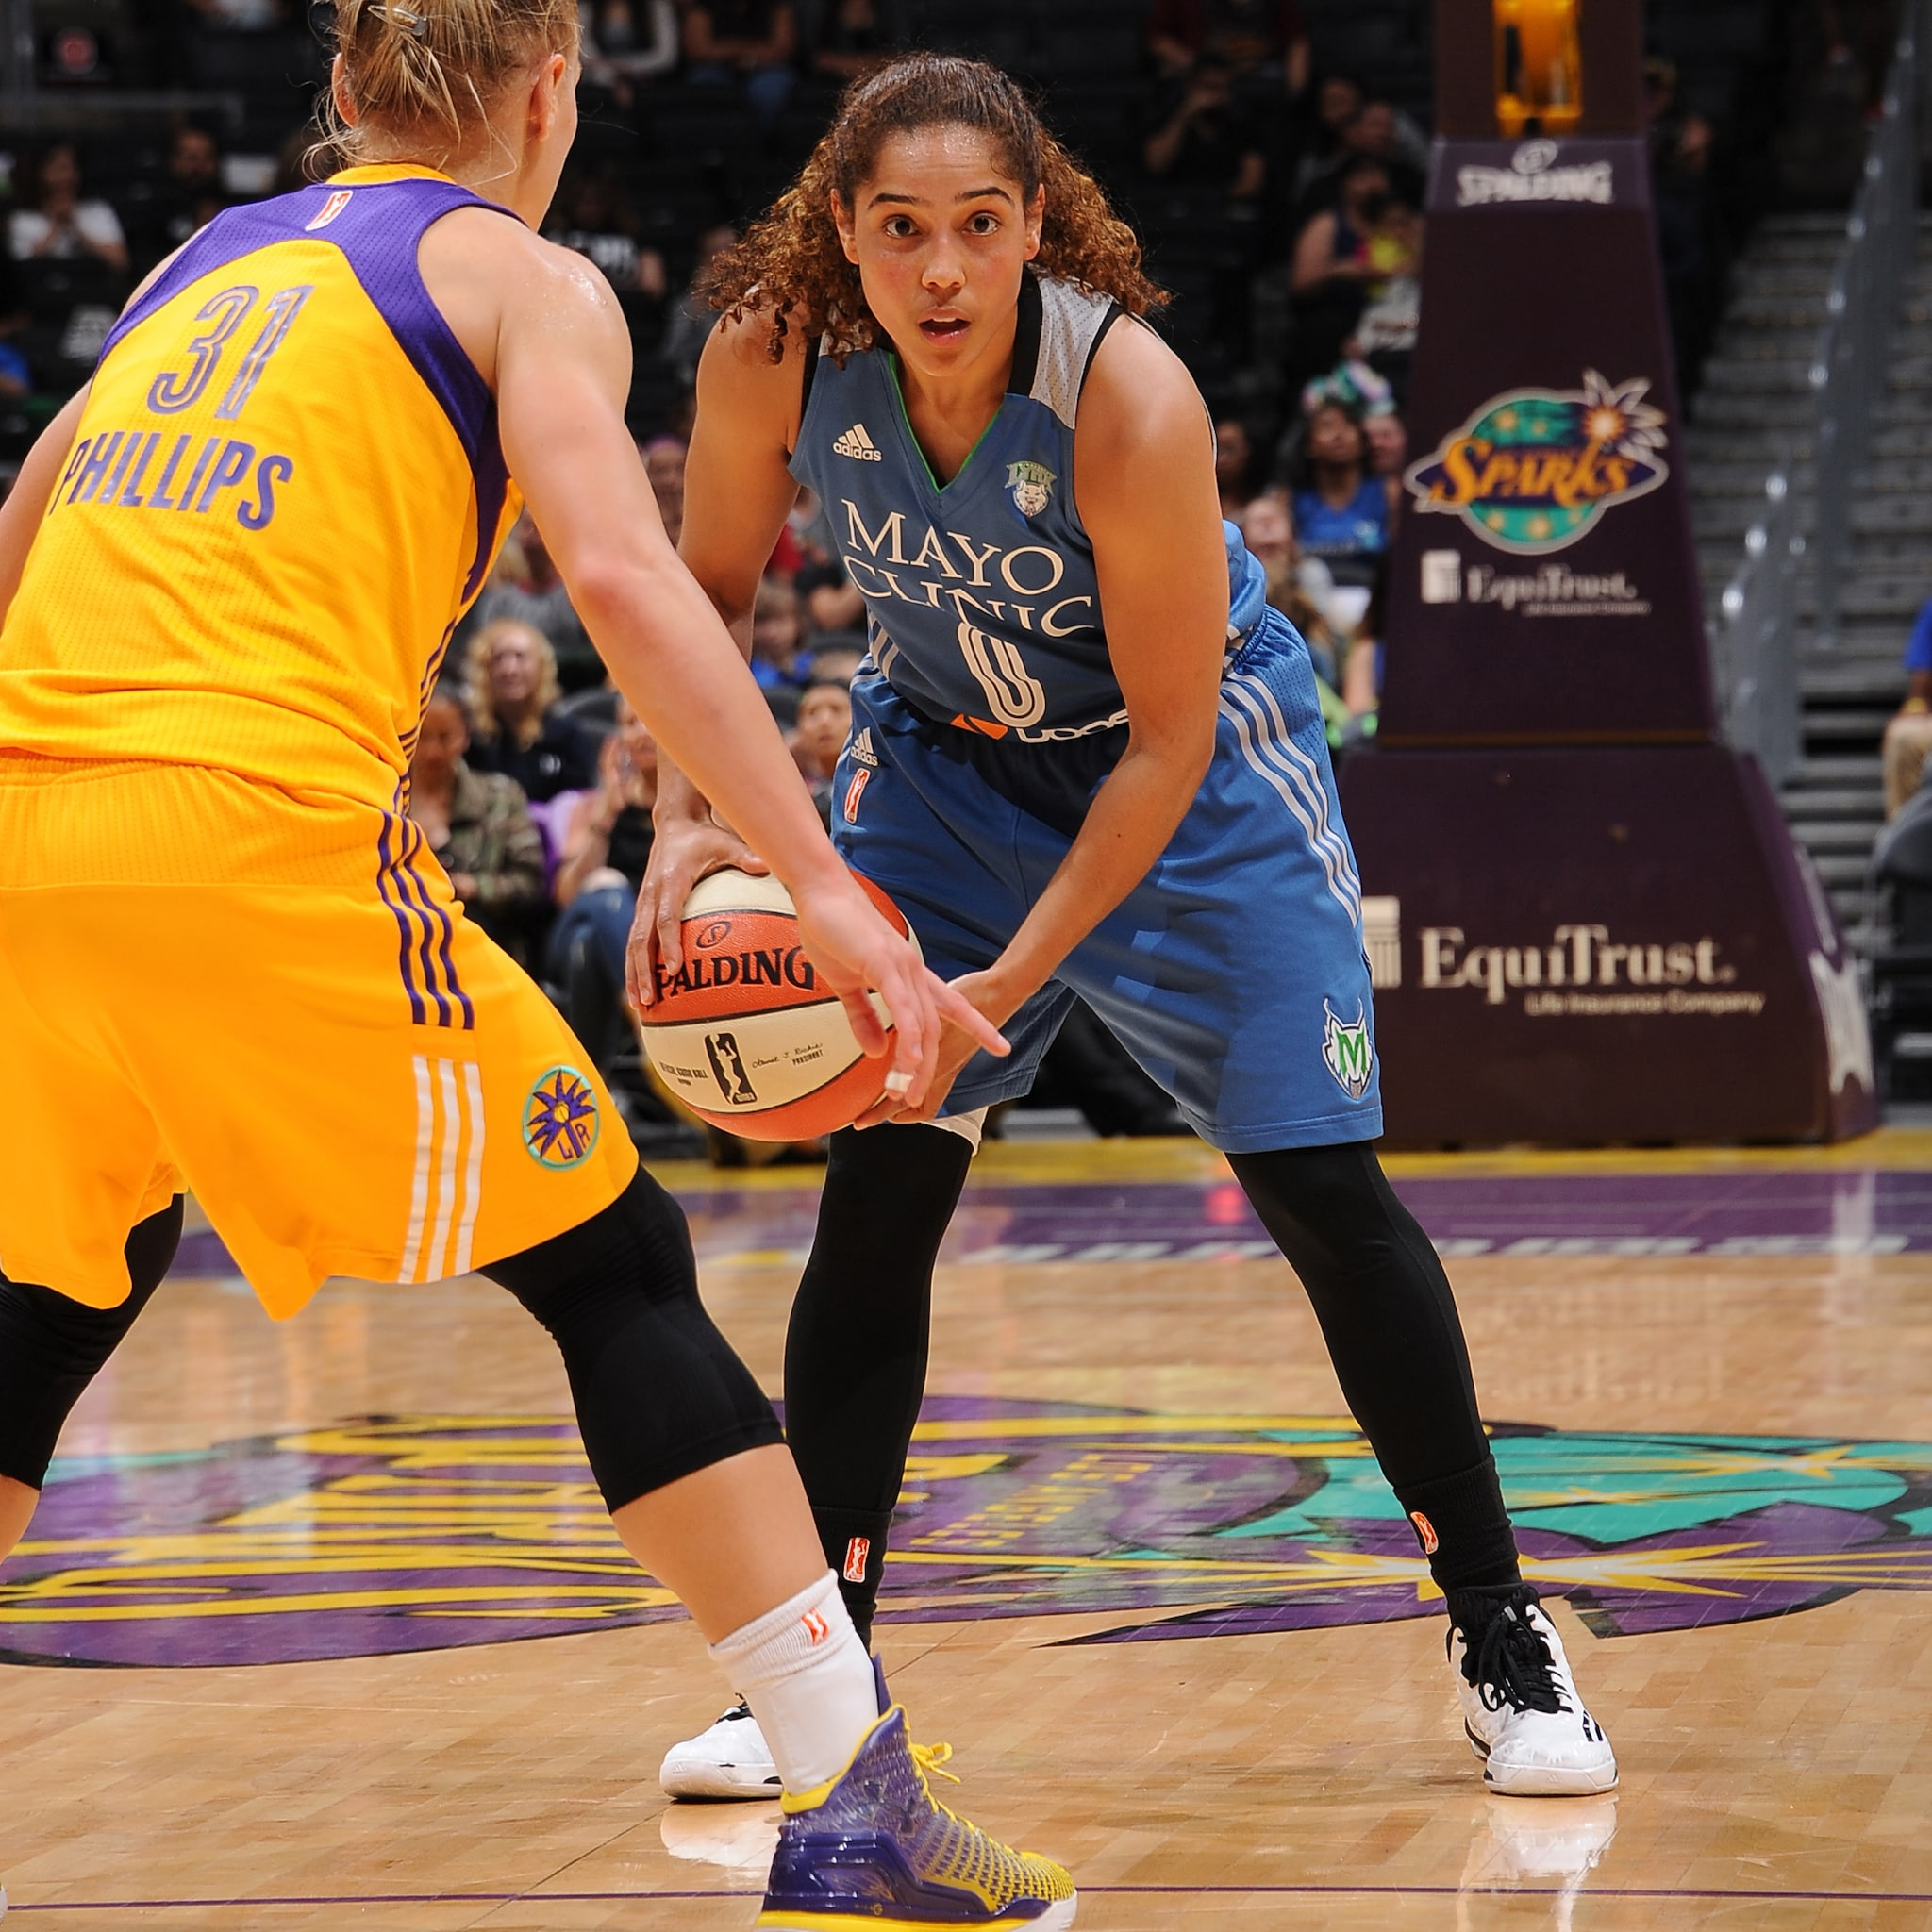 Lynx guard Jennifer O'Neill had a quiet game off the bench playing only 14 minutes and scoring just three points while adding three rebounds and two assists.